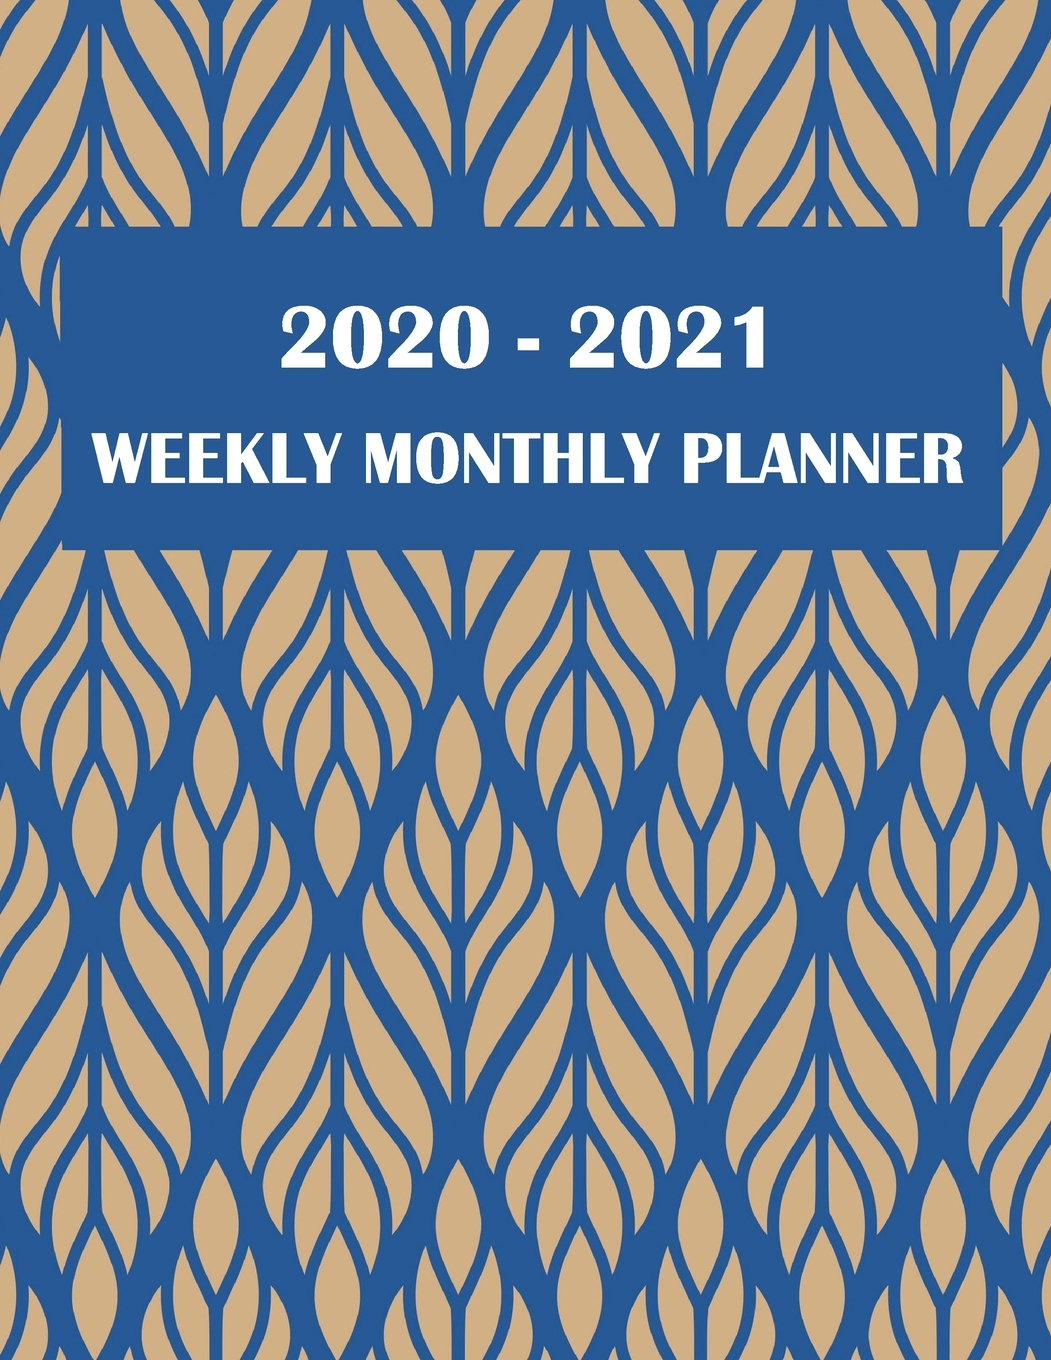 2020-2021 Weekly Monthly Planner : Two Year Academic 2020-2021 Calendar  Book, Weekly/monthly/yearly Calendar Journal, Large 8.5 X 11 Daily Journal